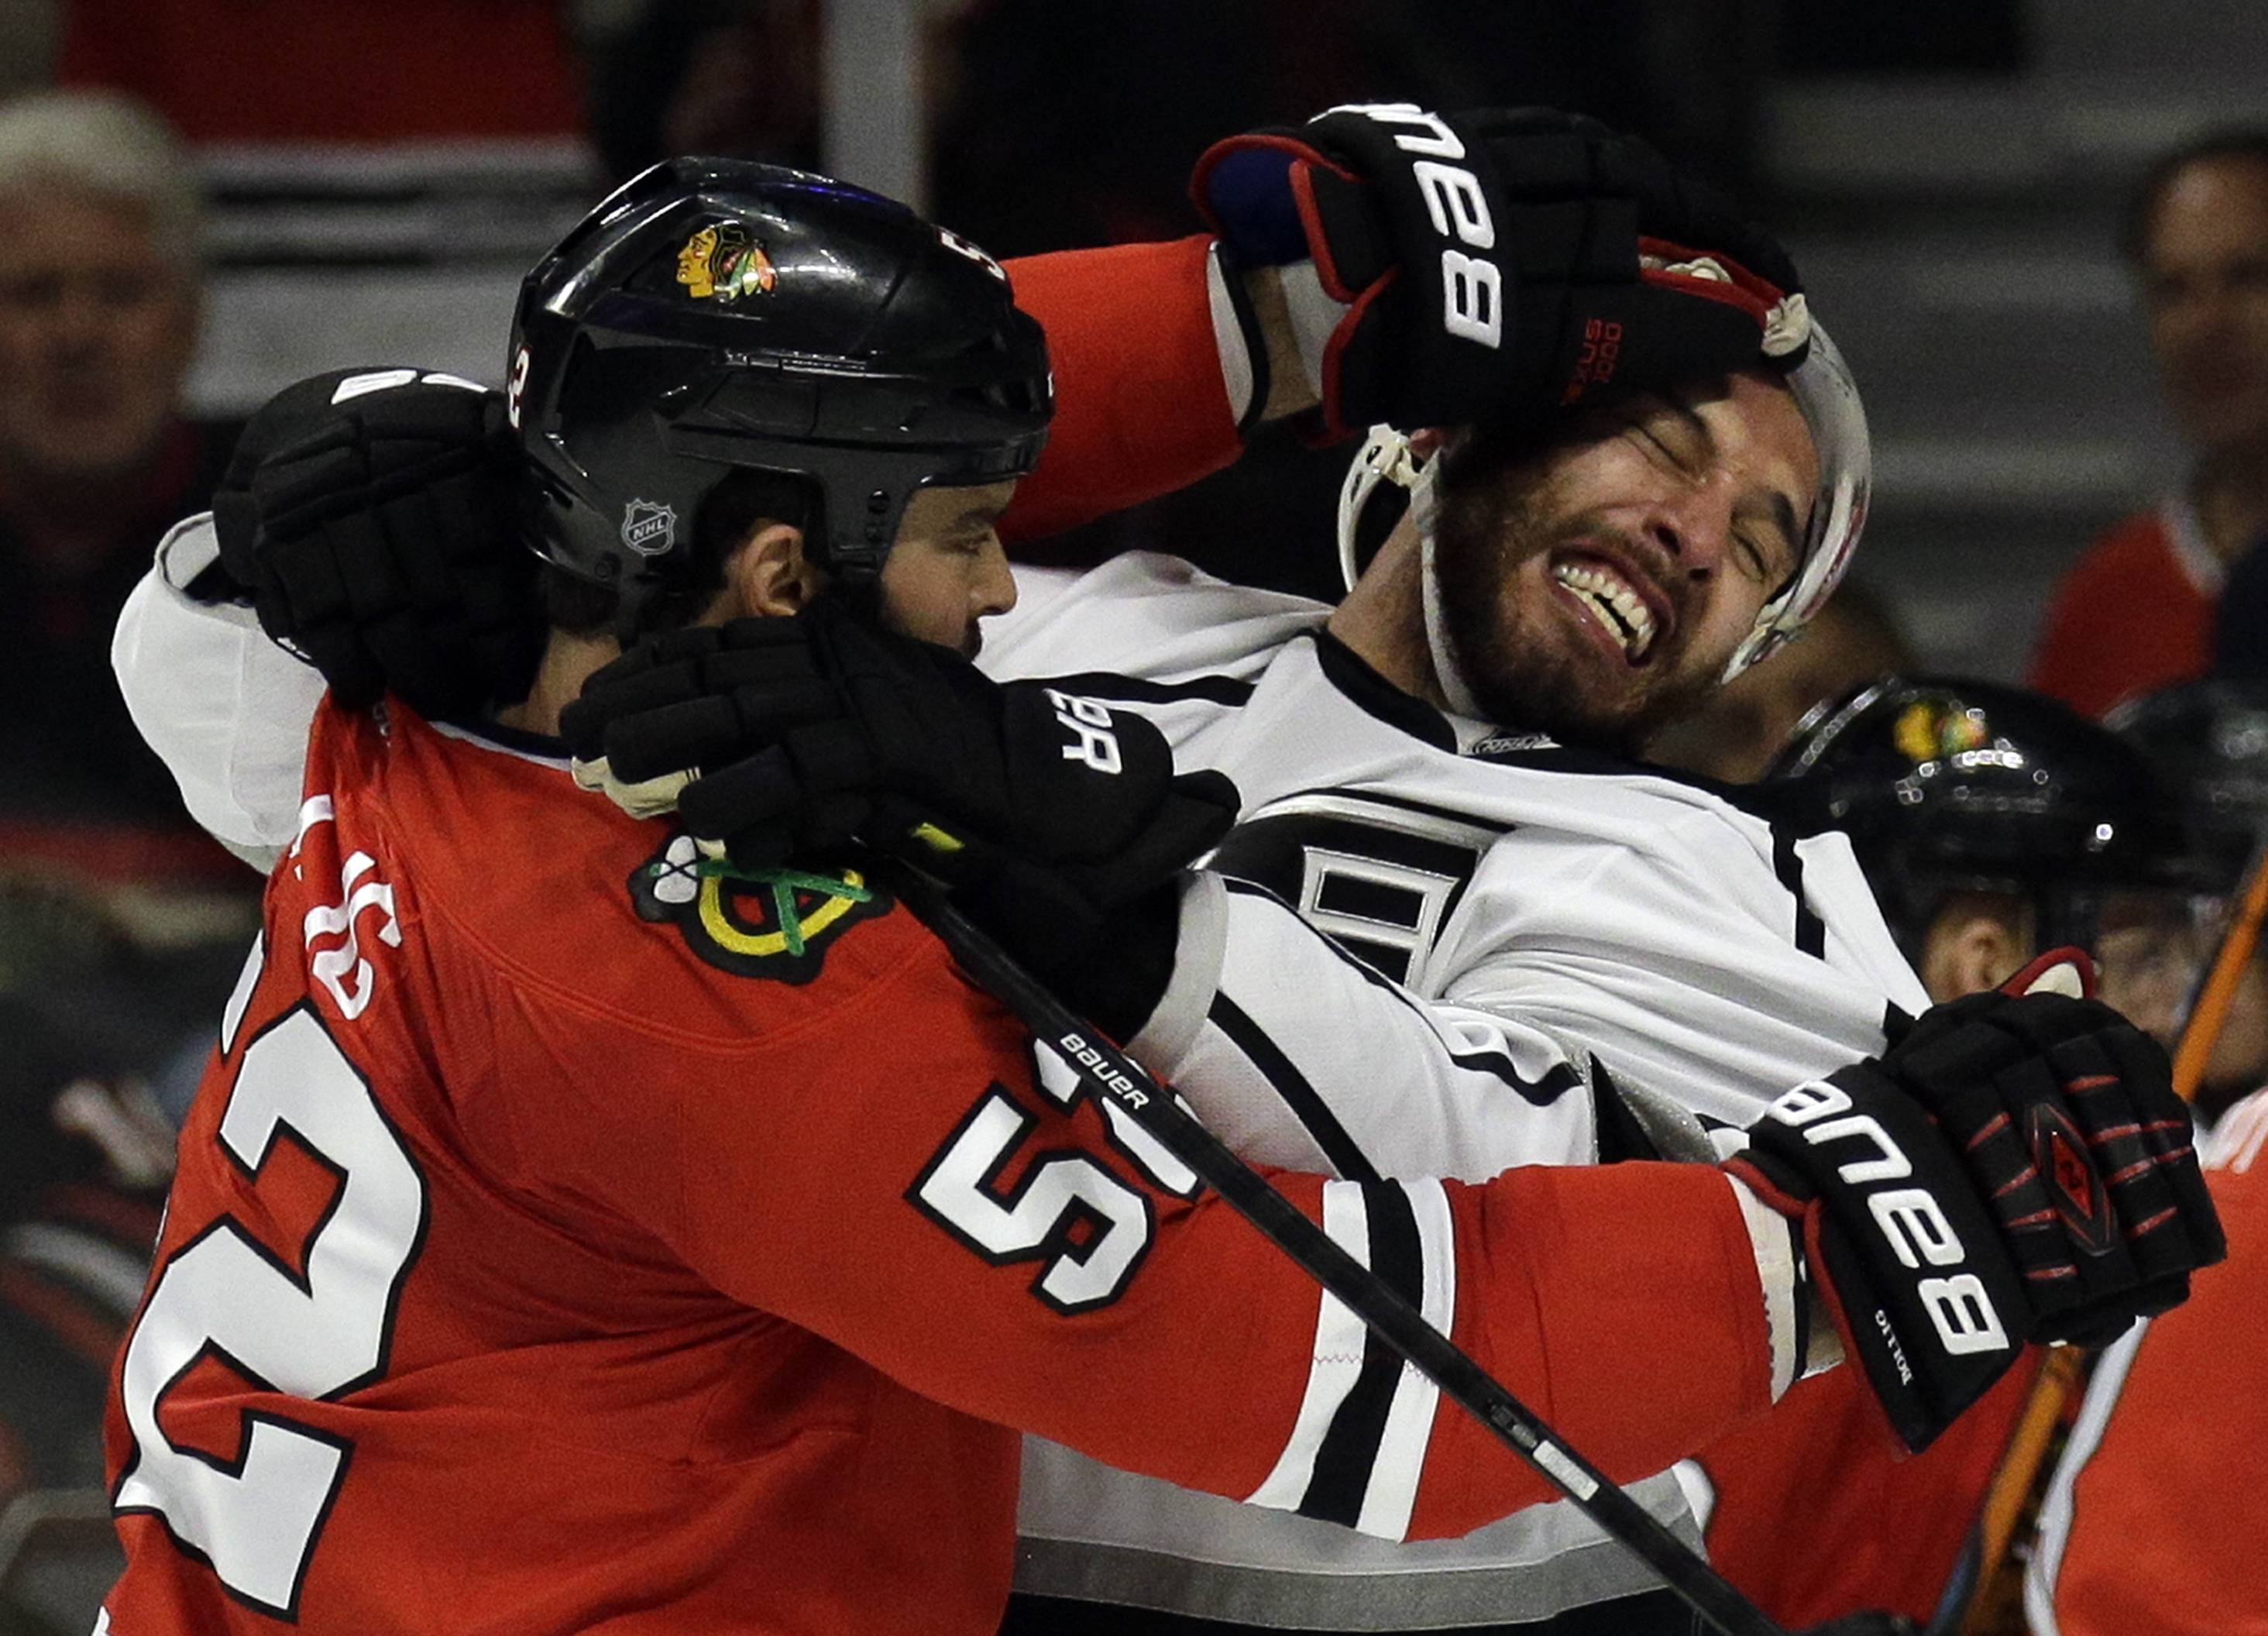 Now that Brandon Bollig is gone, Mike Spellman has a pretty good idea of which Blackhawks player the fans will love to hate.